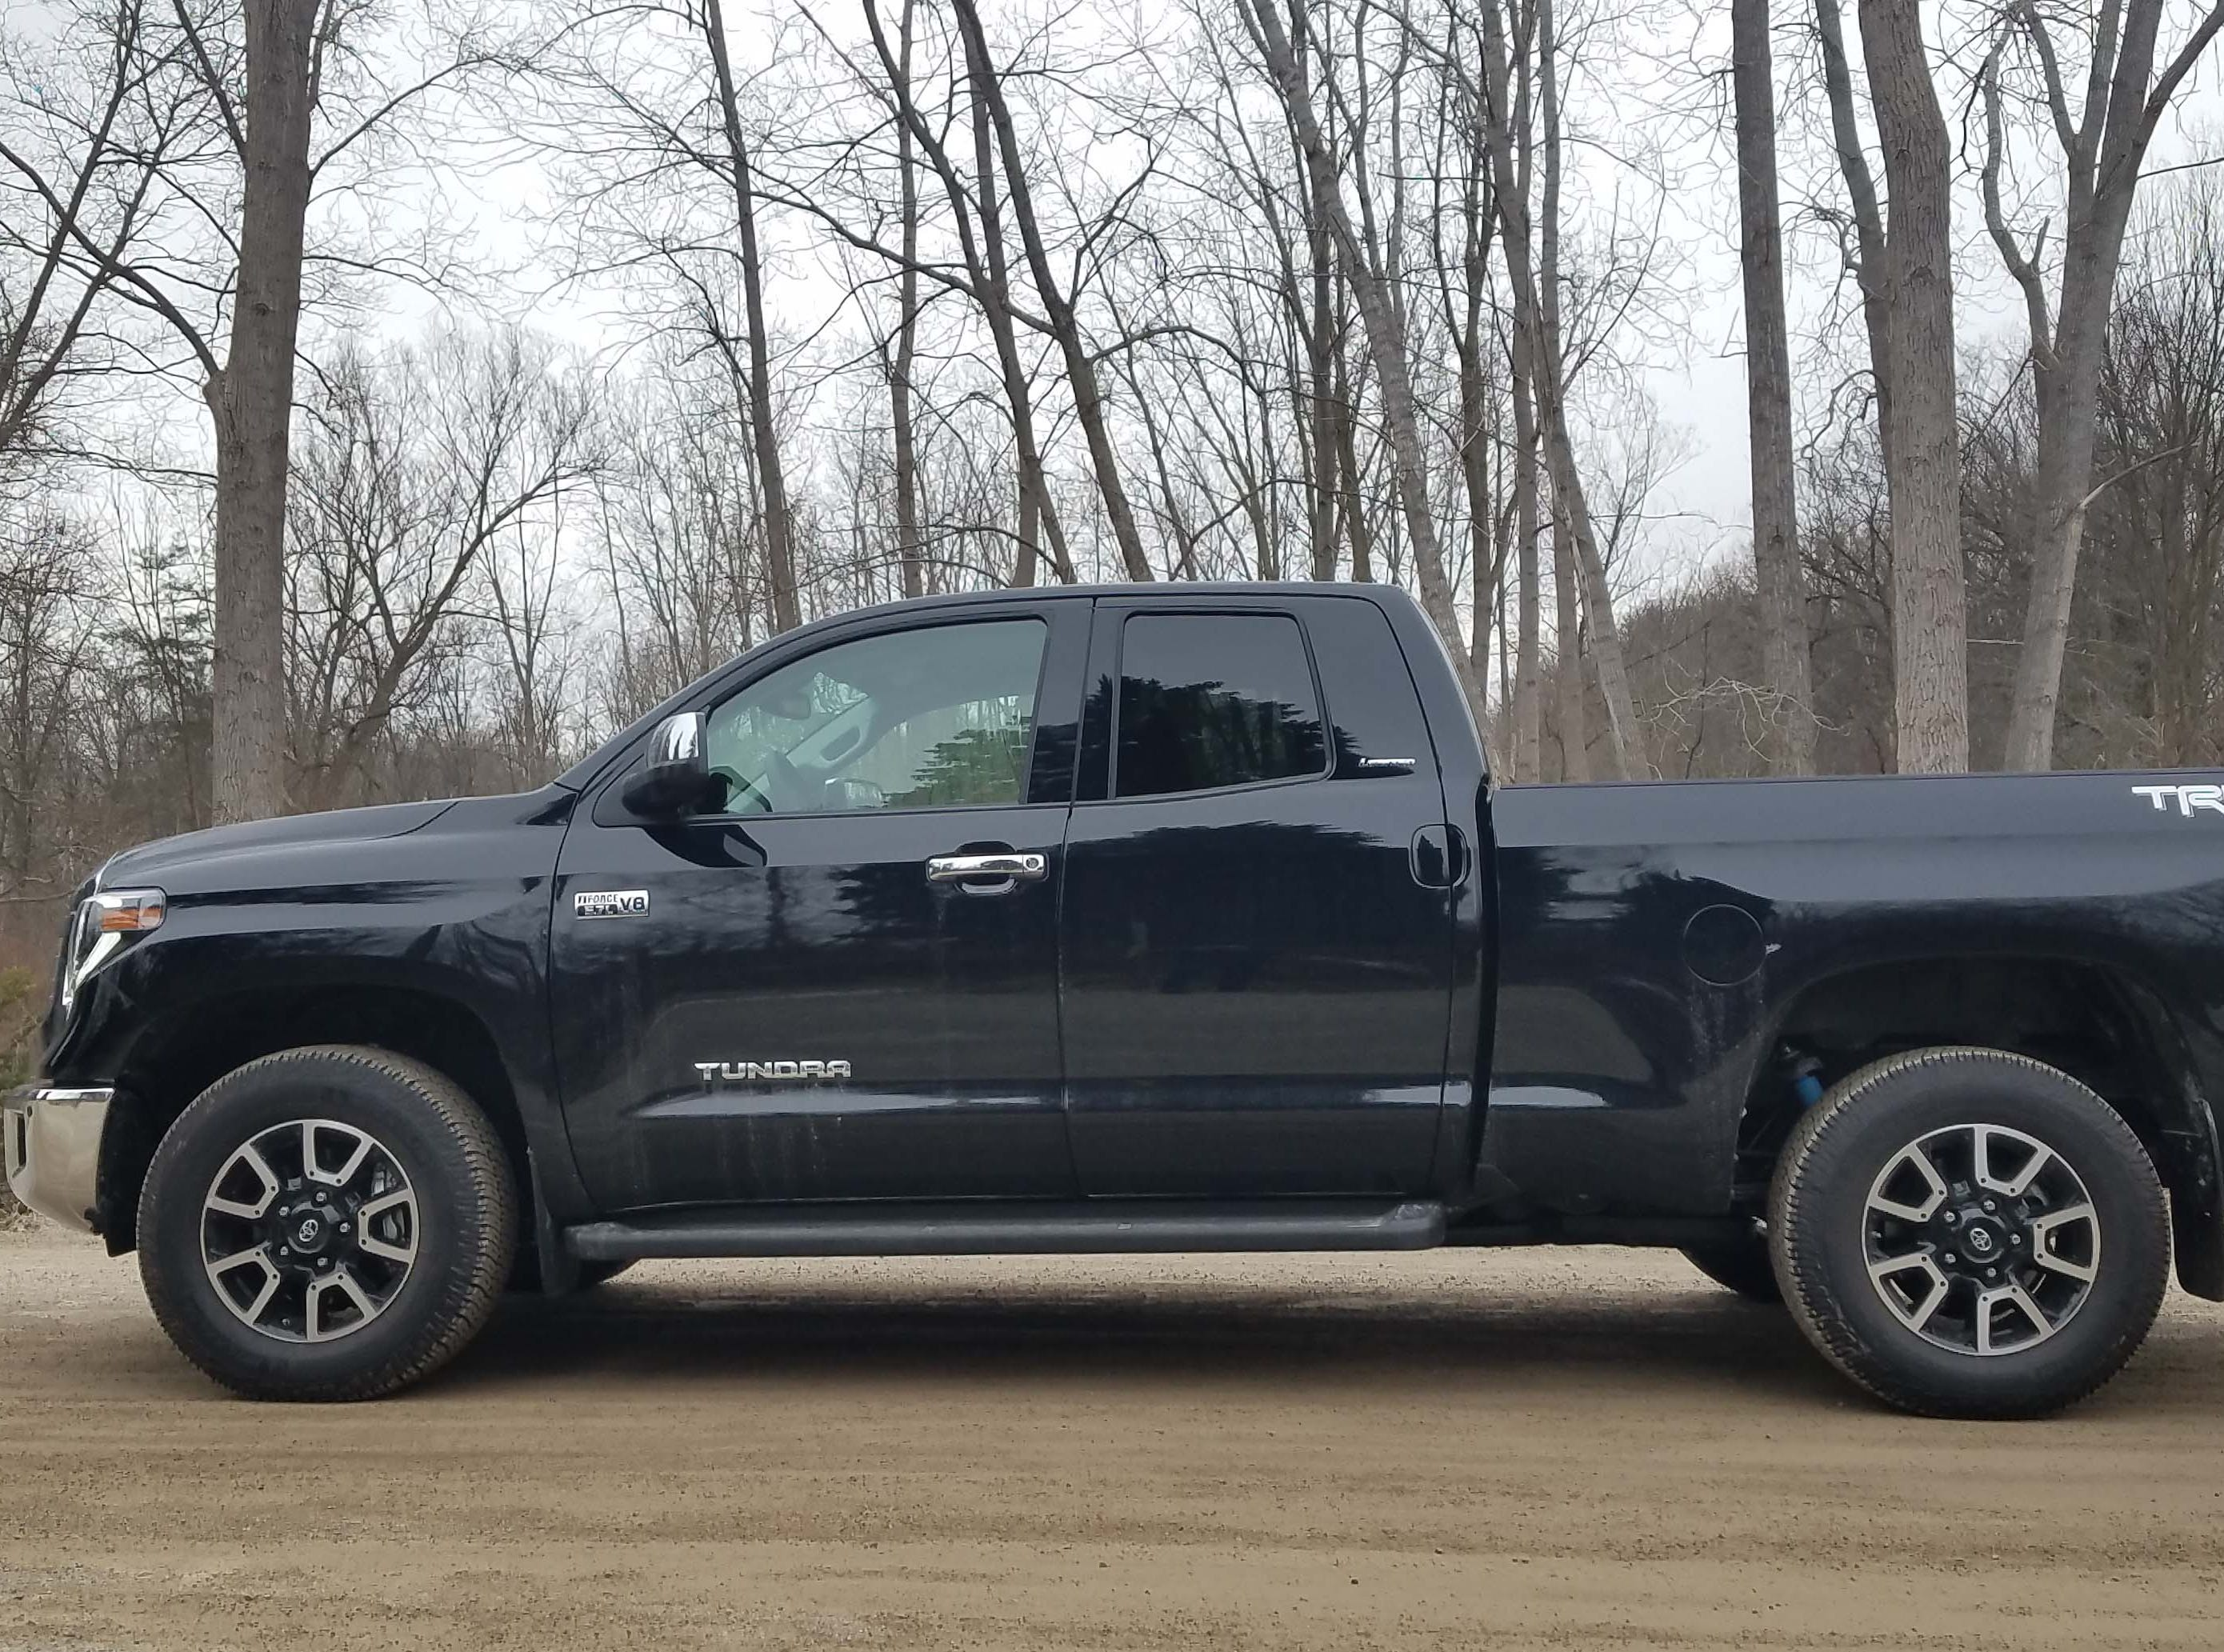 The 2019 Toyota Tundra lags its Detroit competition in sales numbers, but its reliability and standard features demand a look.